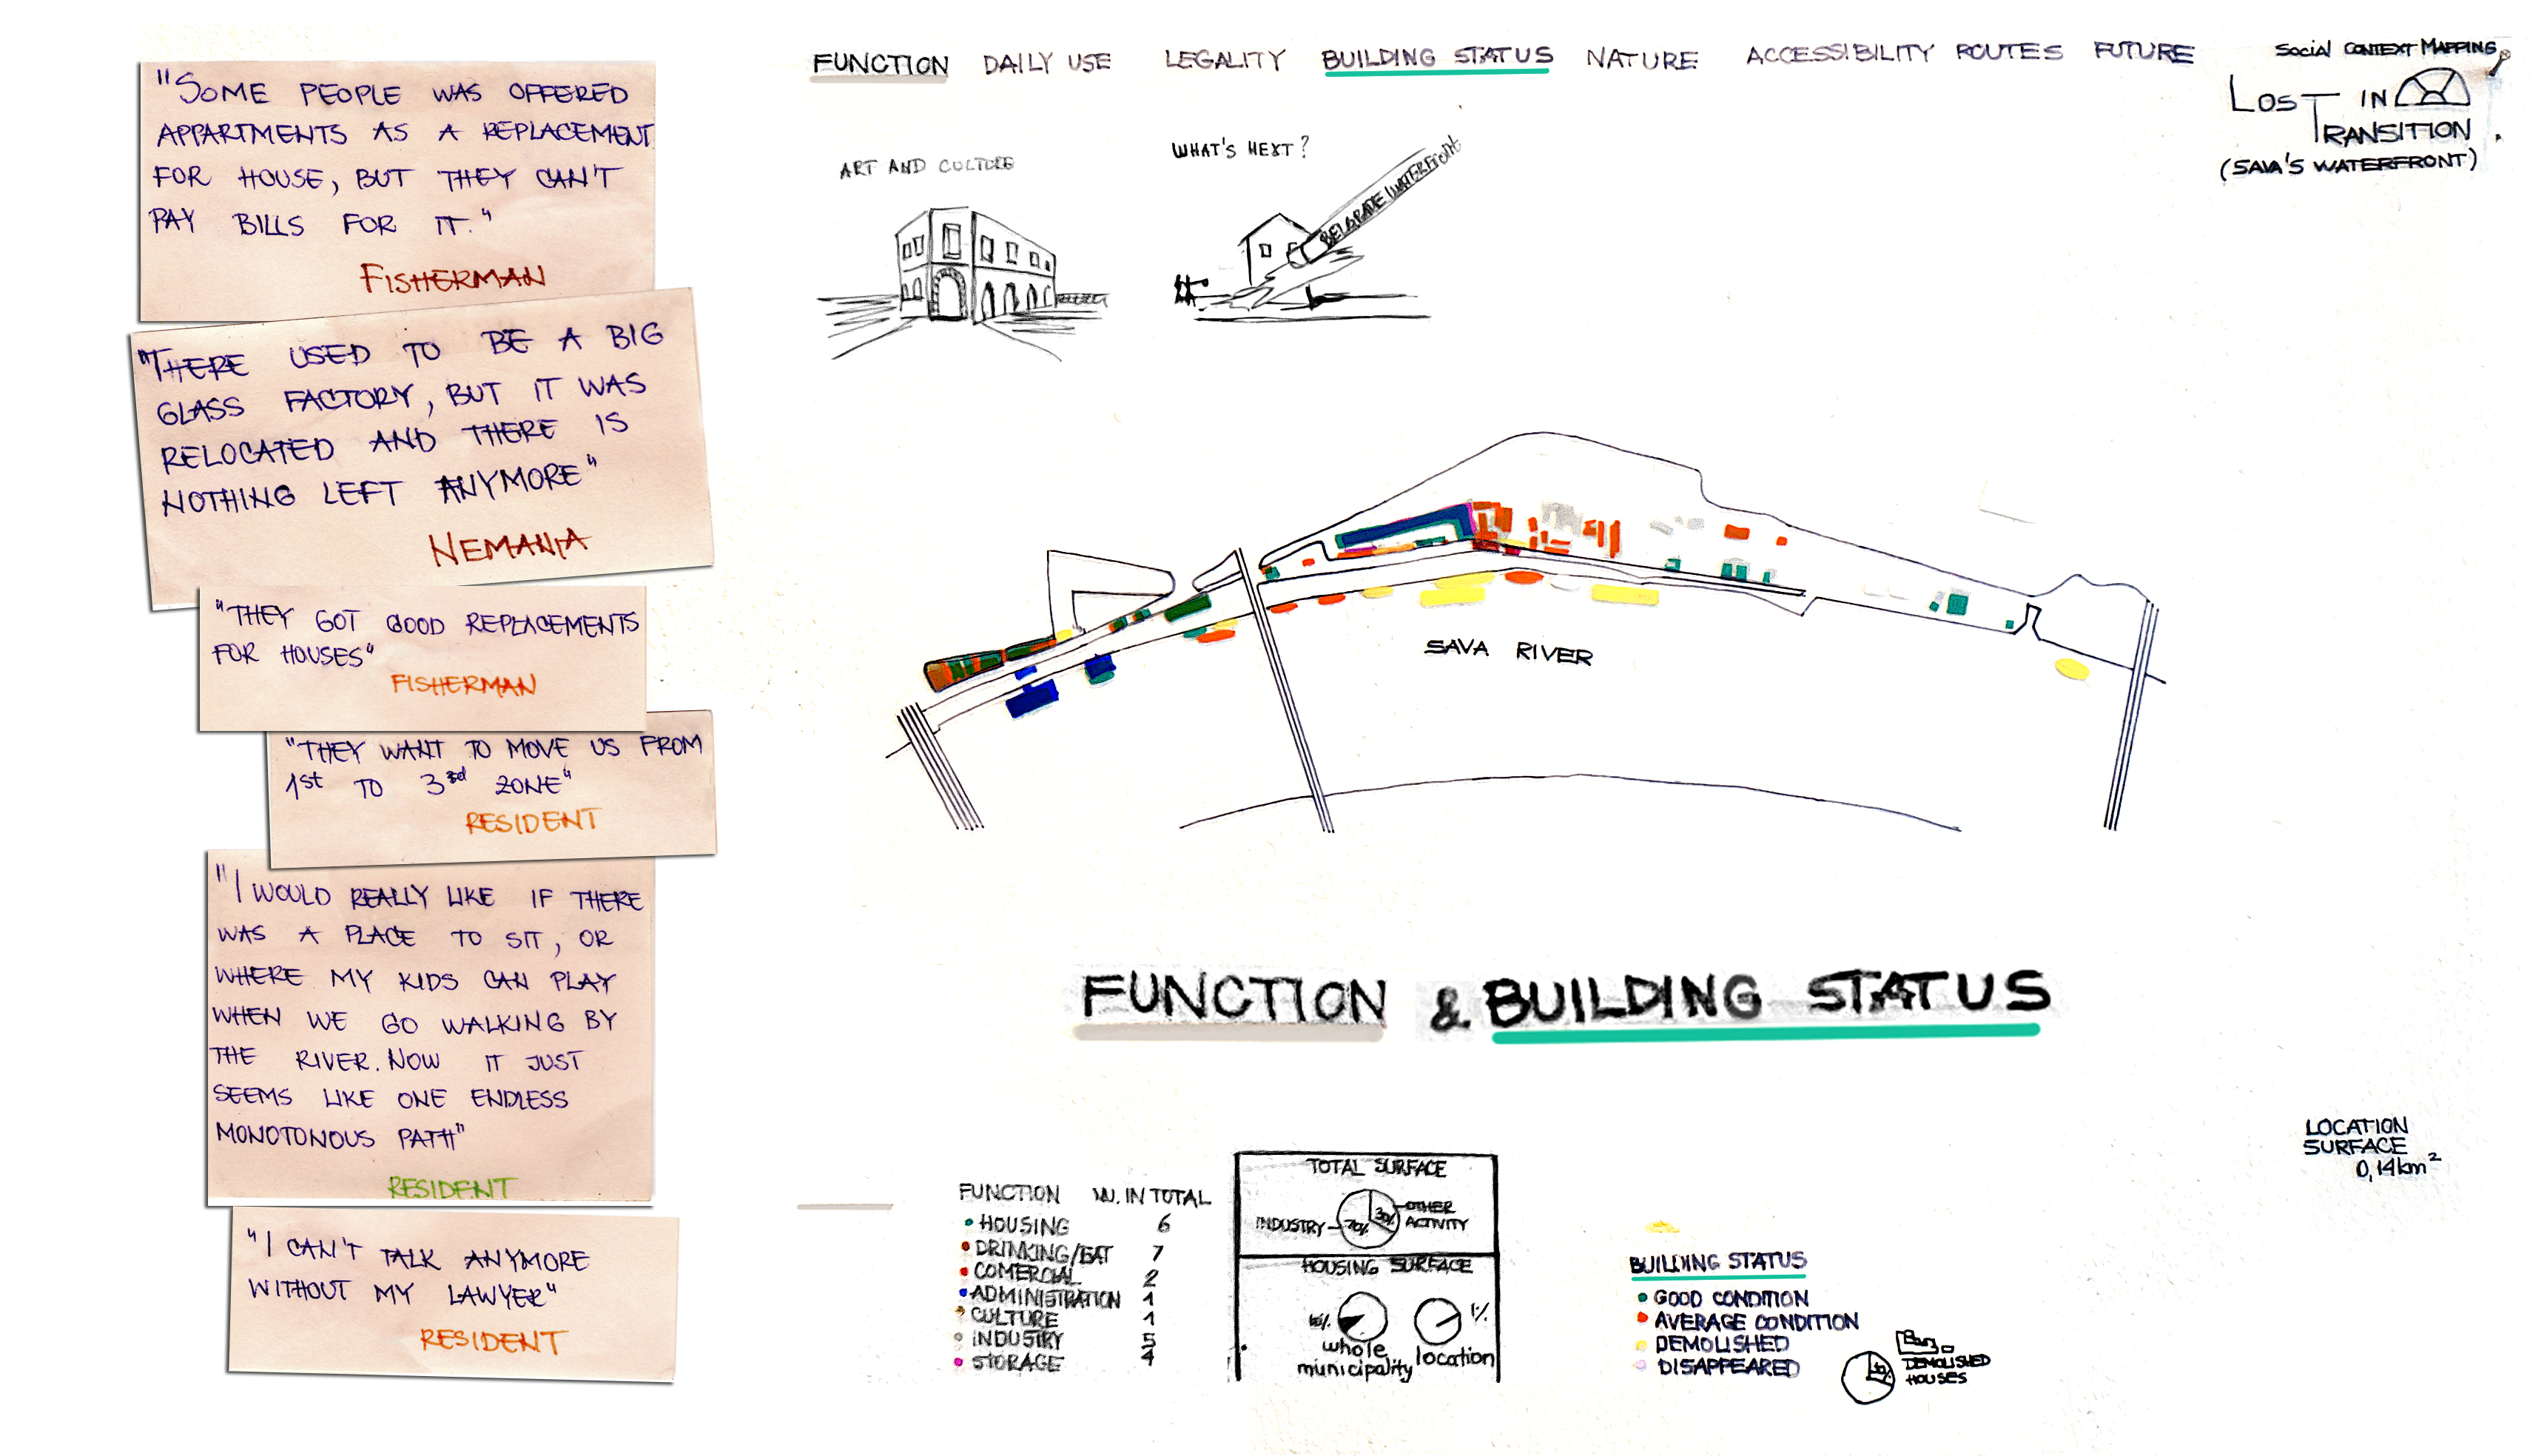 Function&buildingstatus